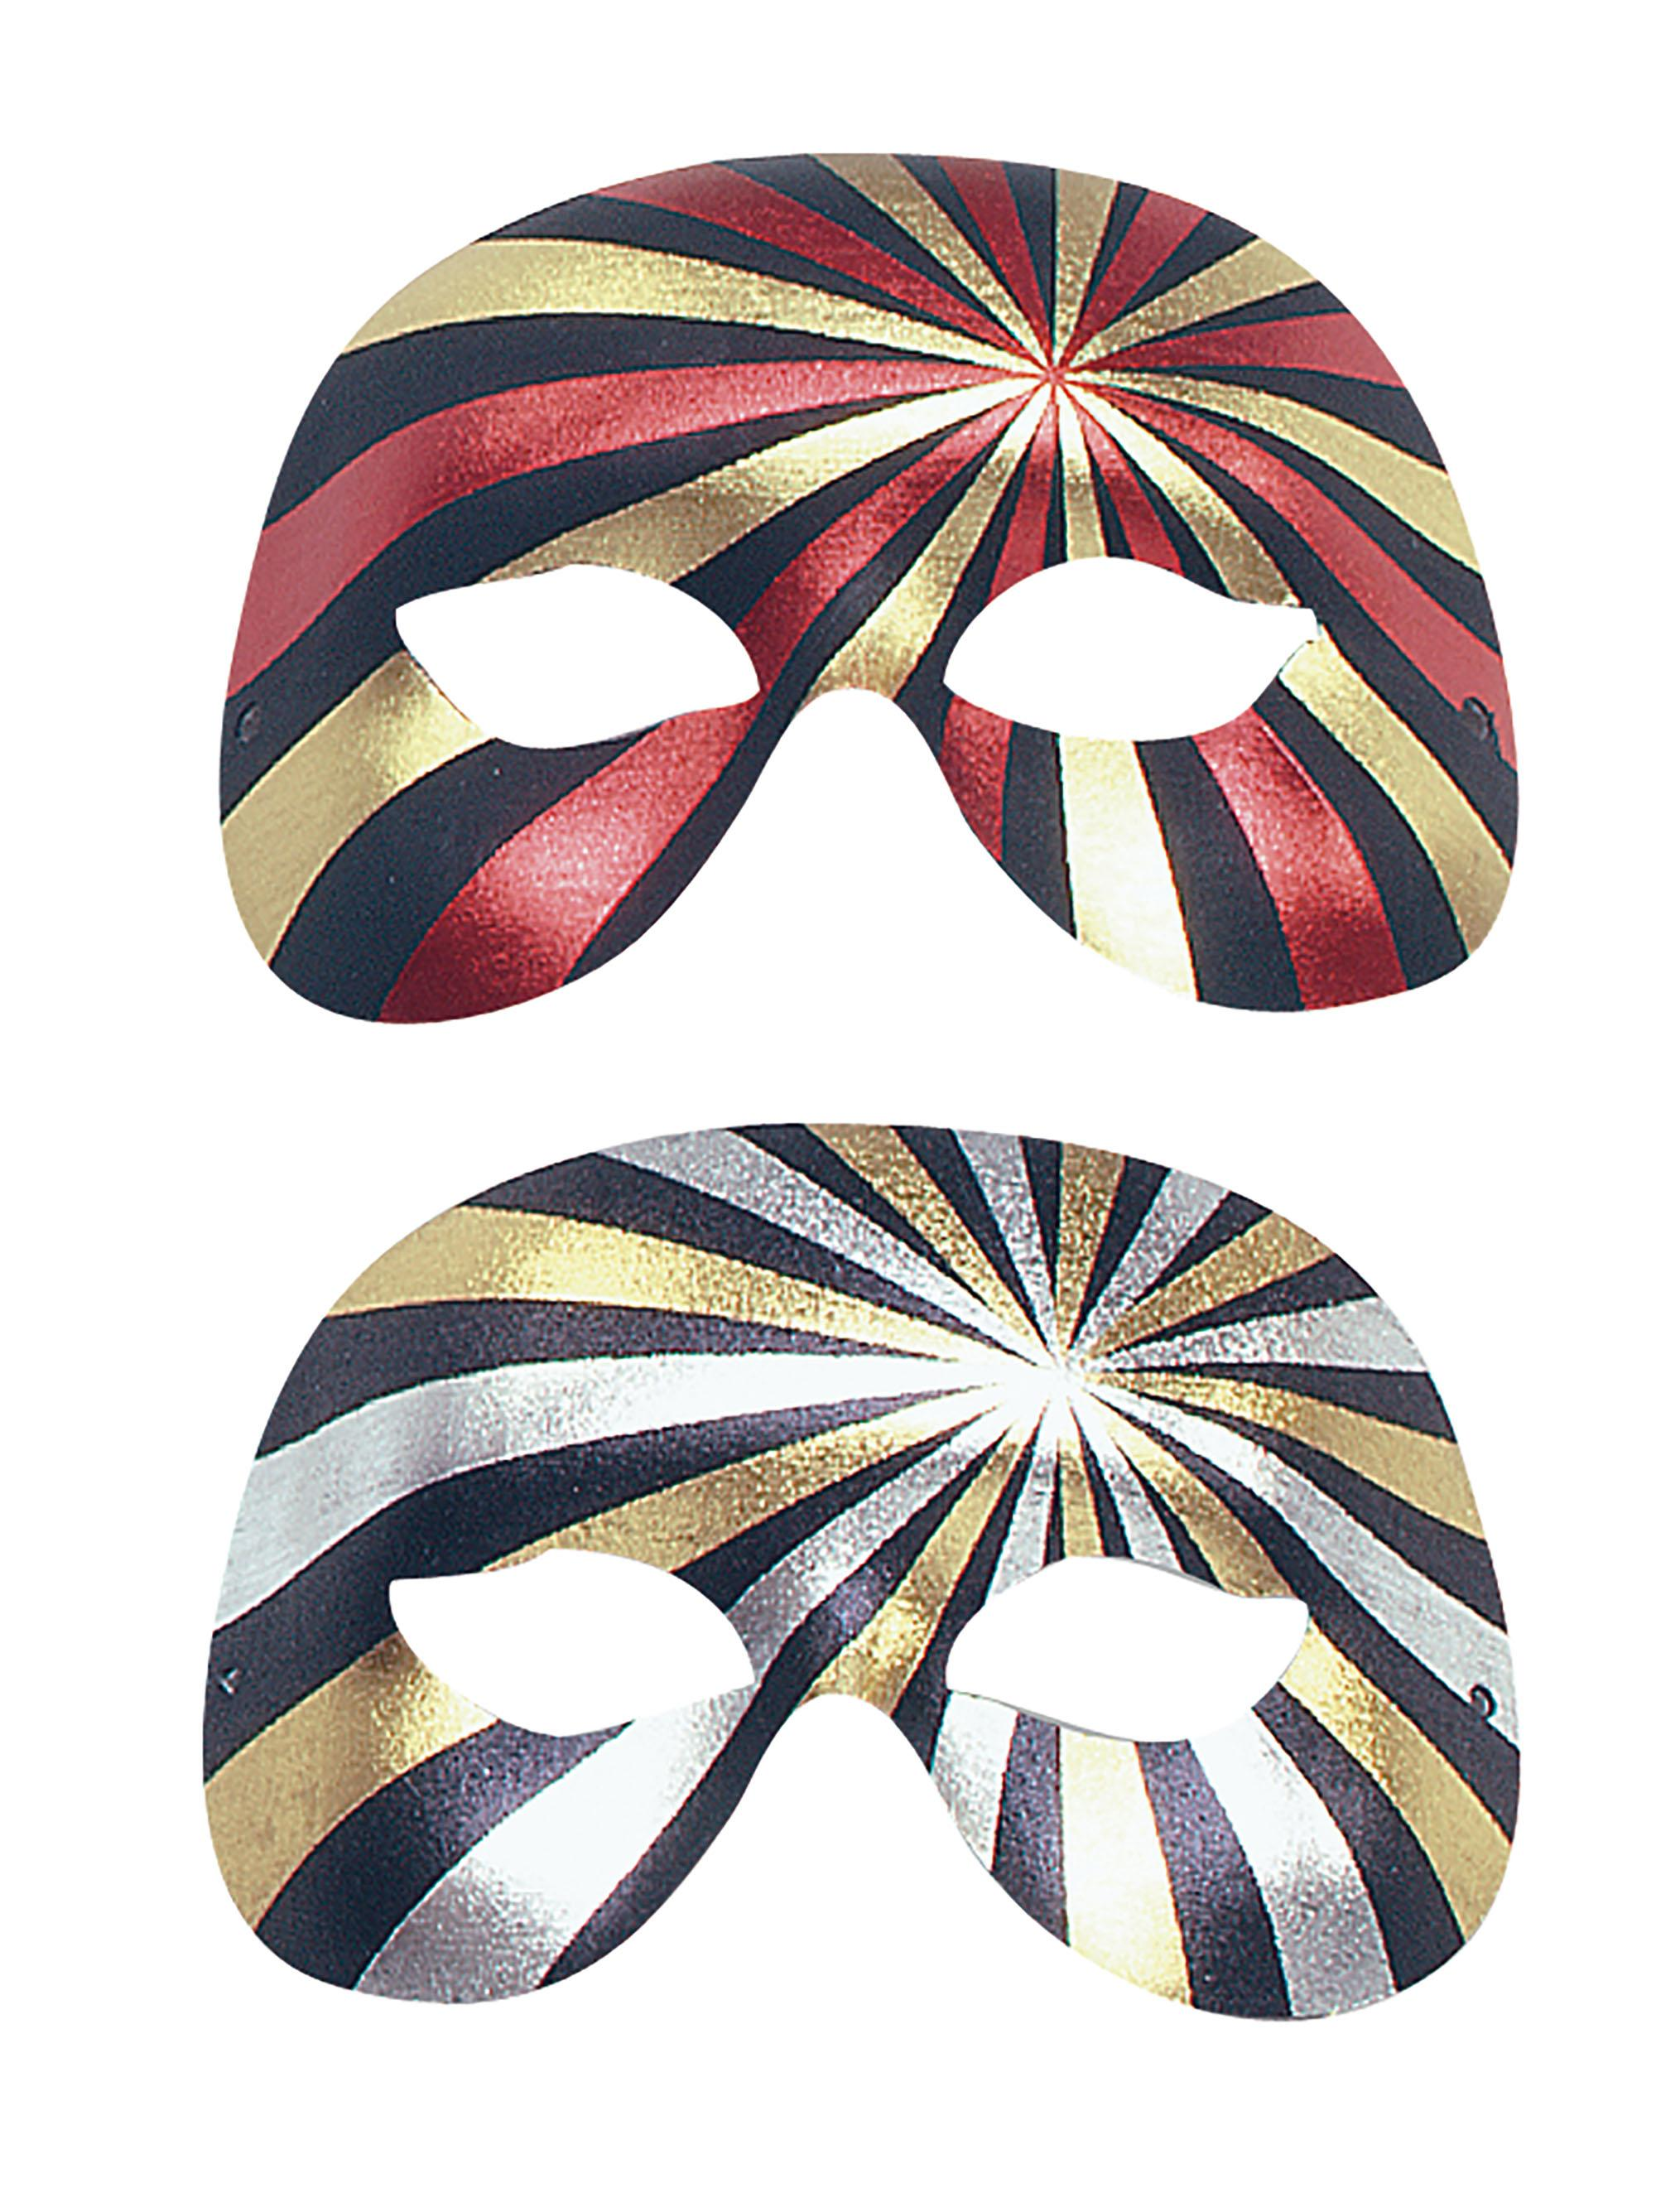 Metallic Psycho Eye Mask